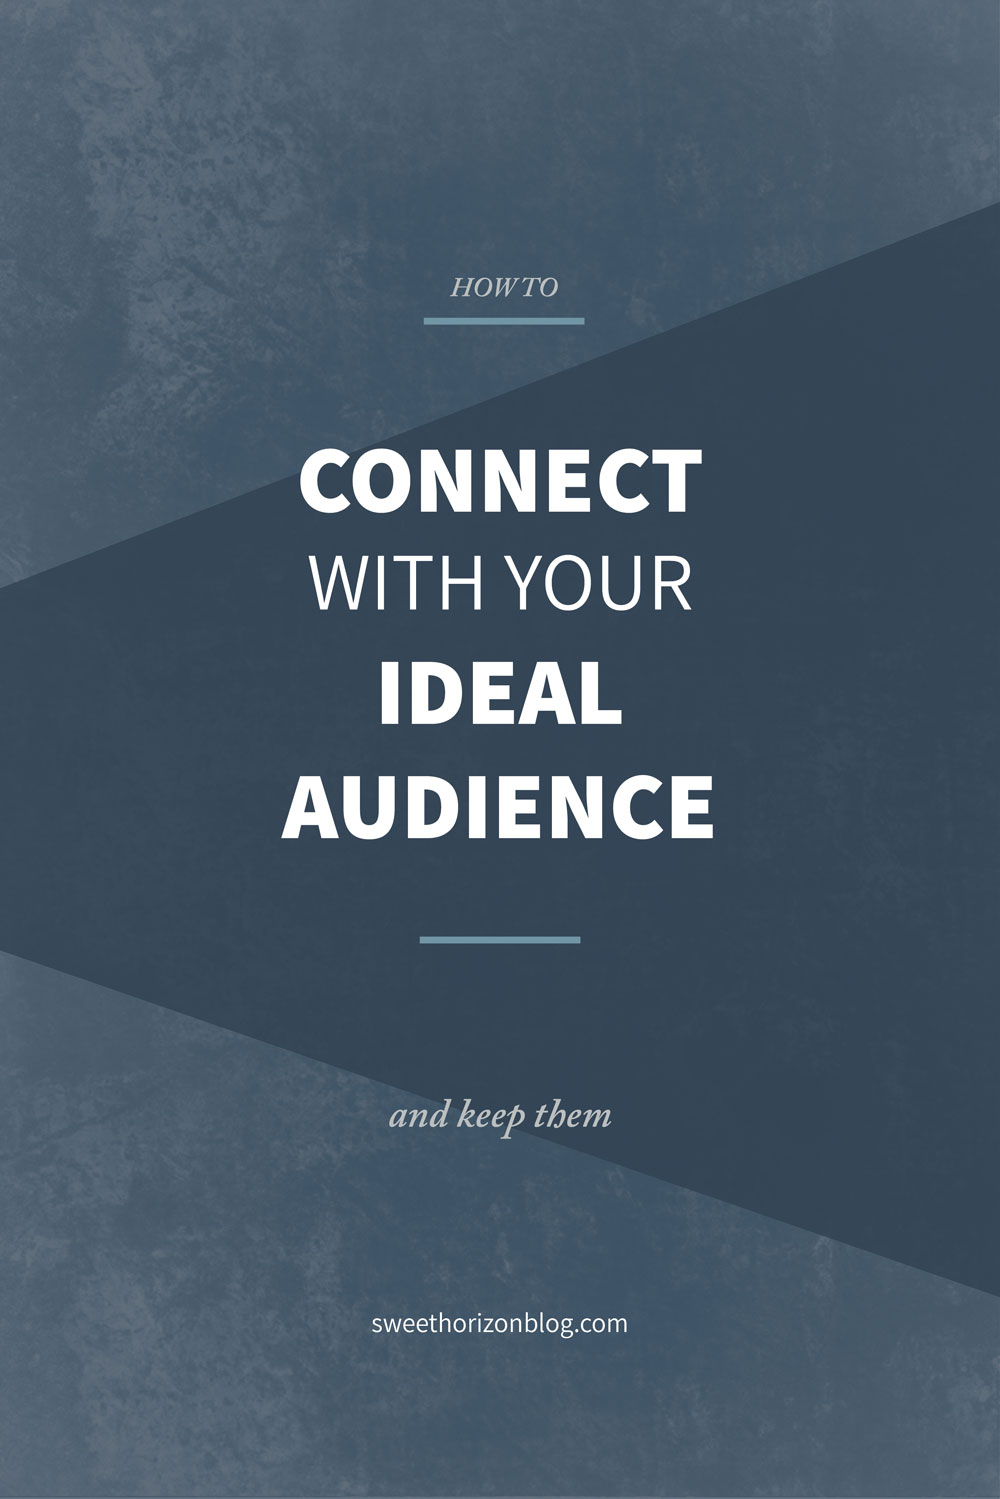 How to Connect With Your Ideal Audience and Keep Them from www.sweethorizonblog.com